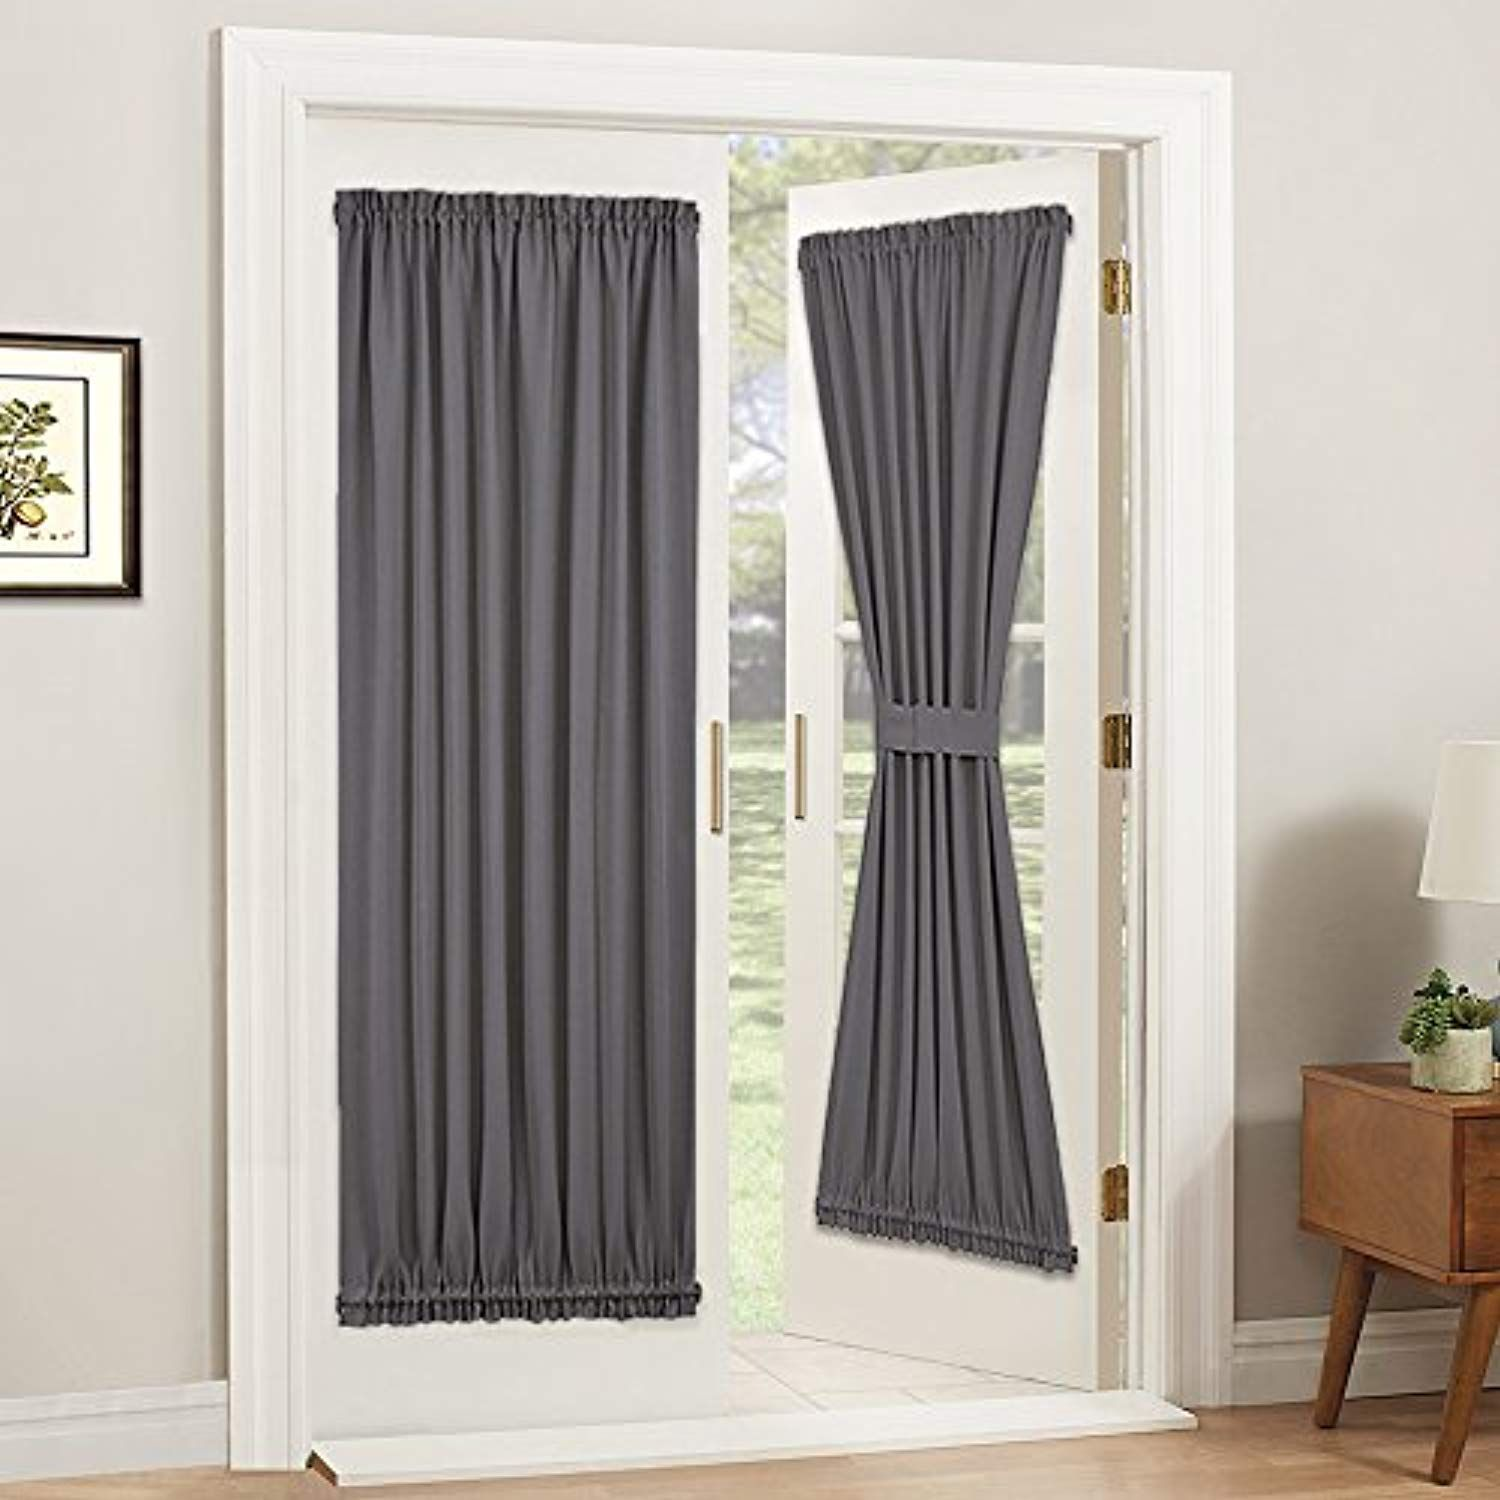 Pony Dance Gray Blackout French Door Curtain Thermal Insulated Rod